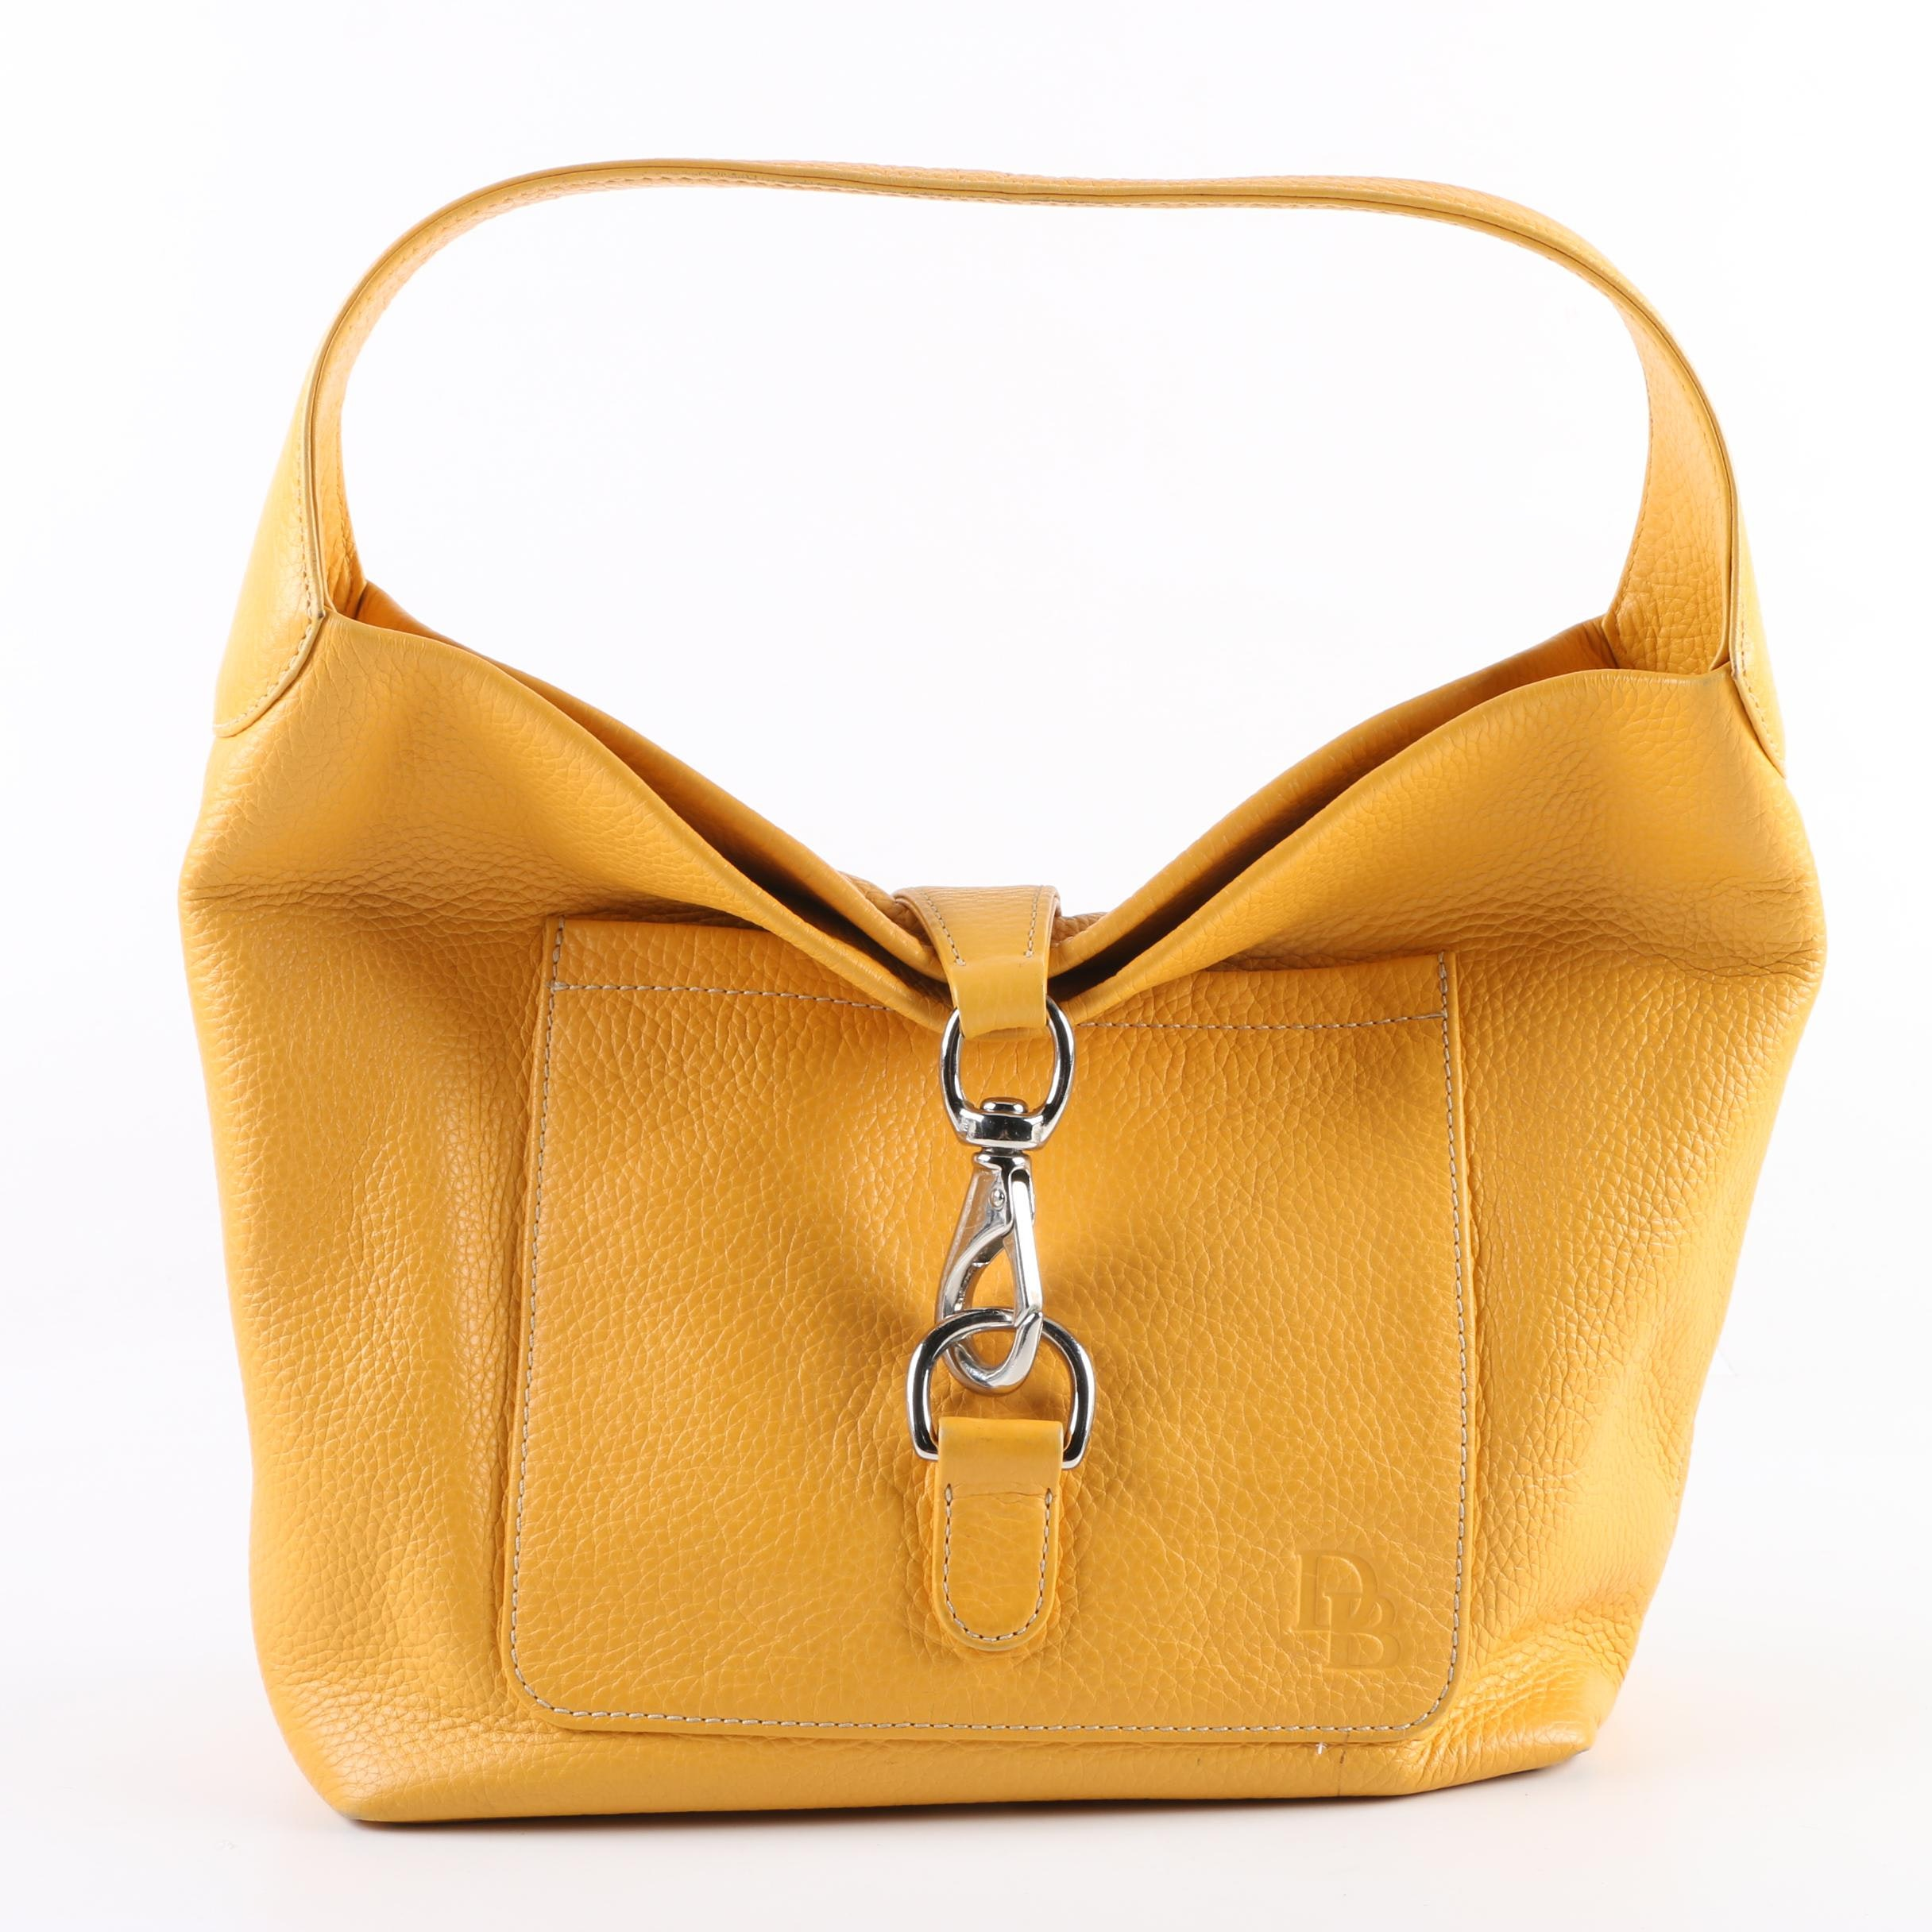 Dooney & Bourke Yellow Pebbled Leather Hobo Bag